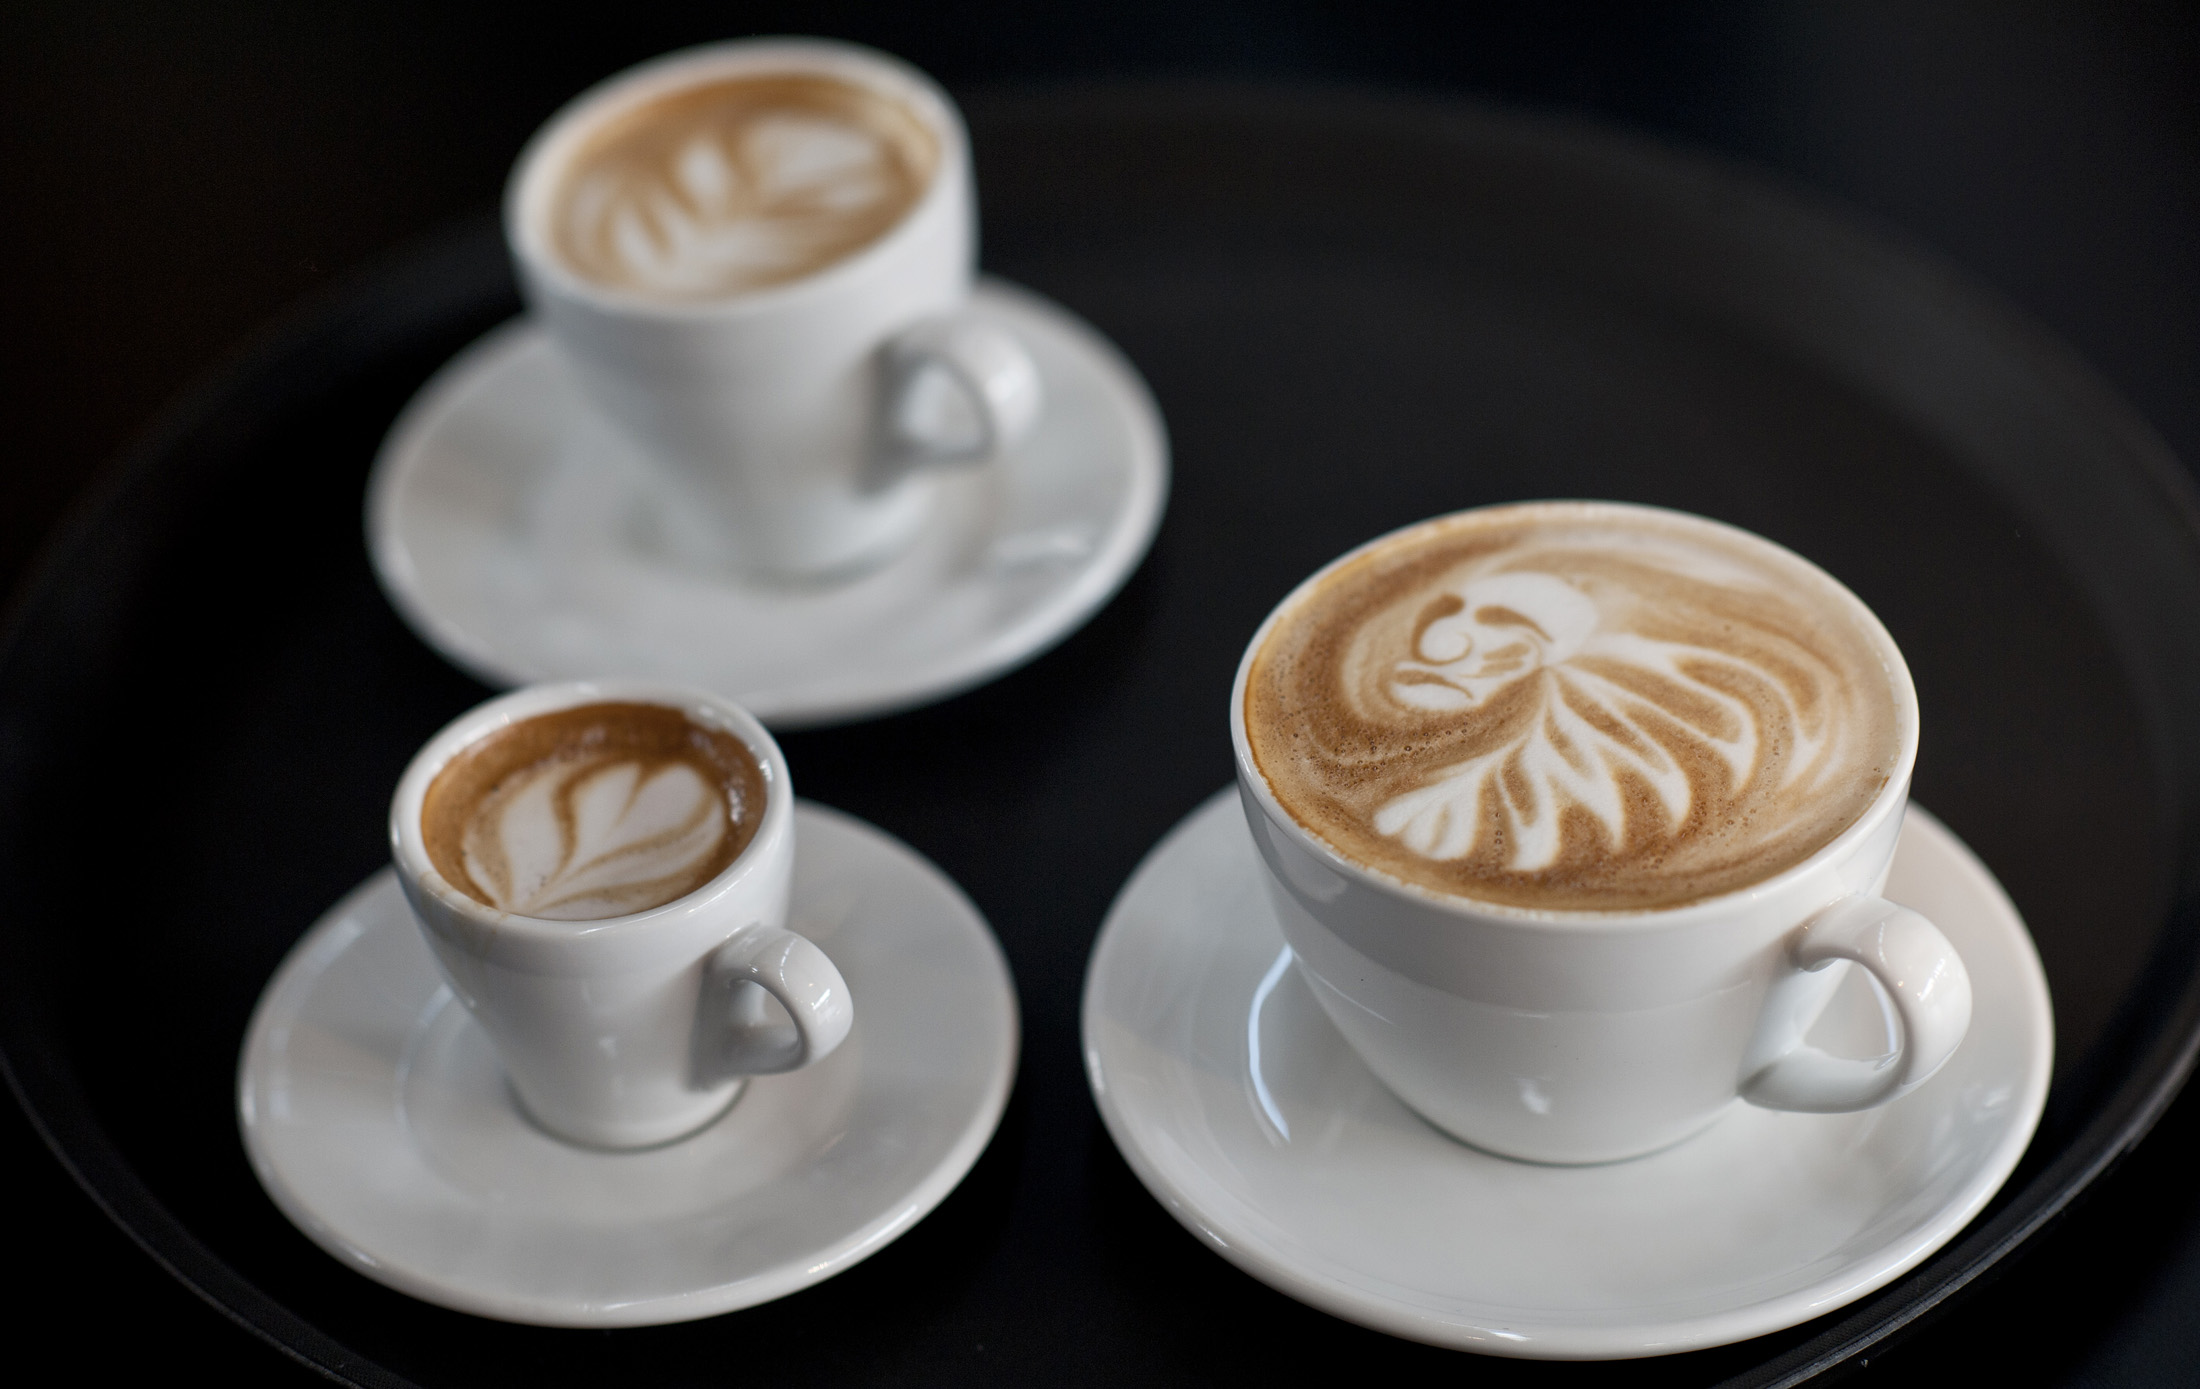 Latte art is displayed during the finals of the German Barista Championships in Hamburg.